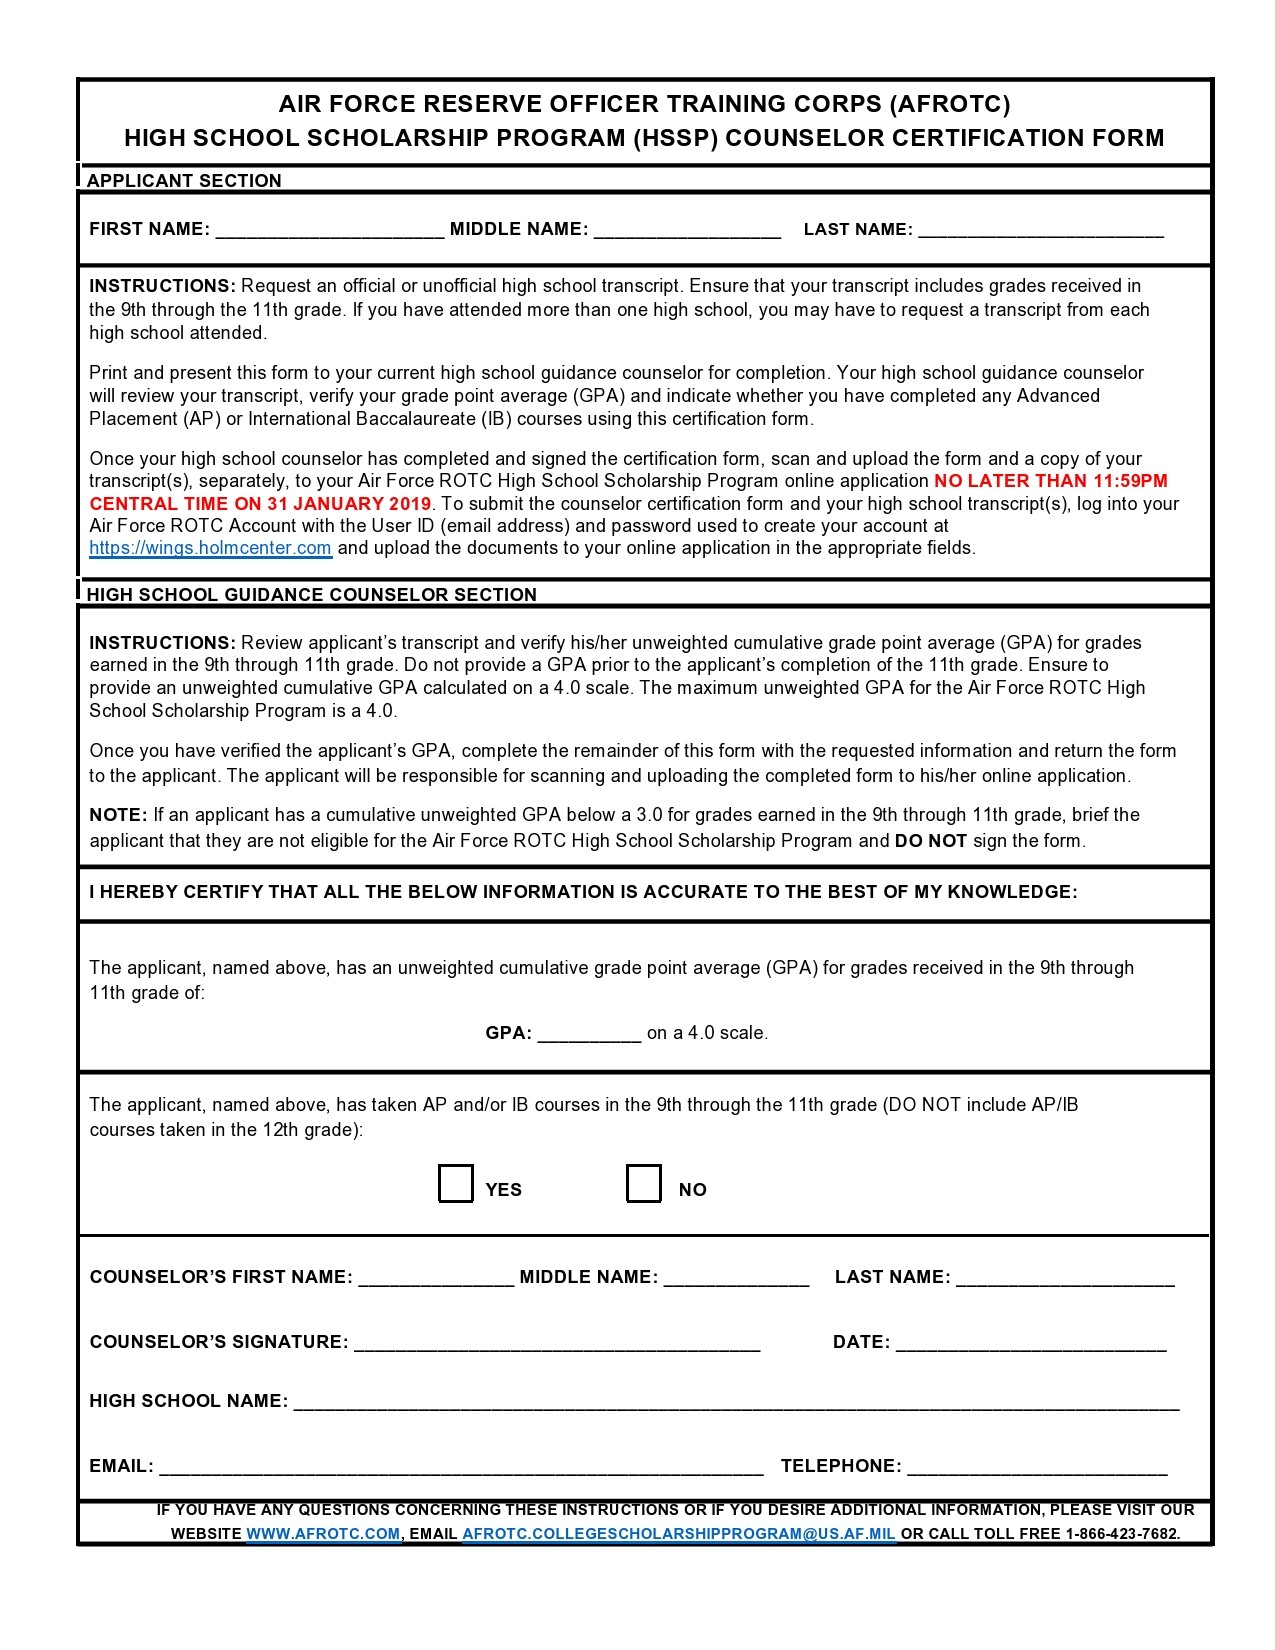 Free army counseling form 27